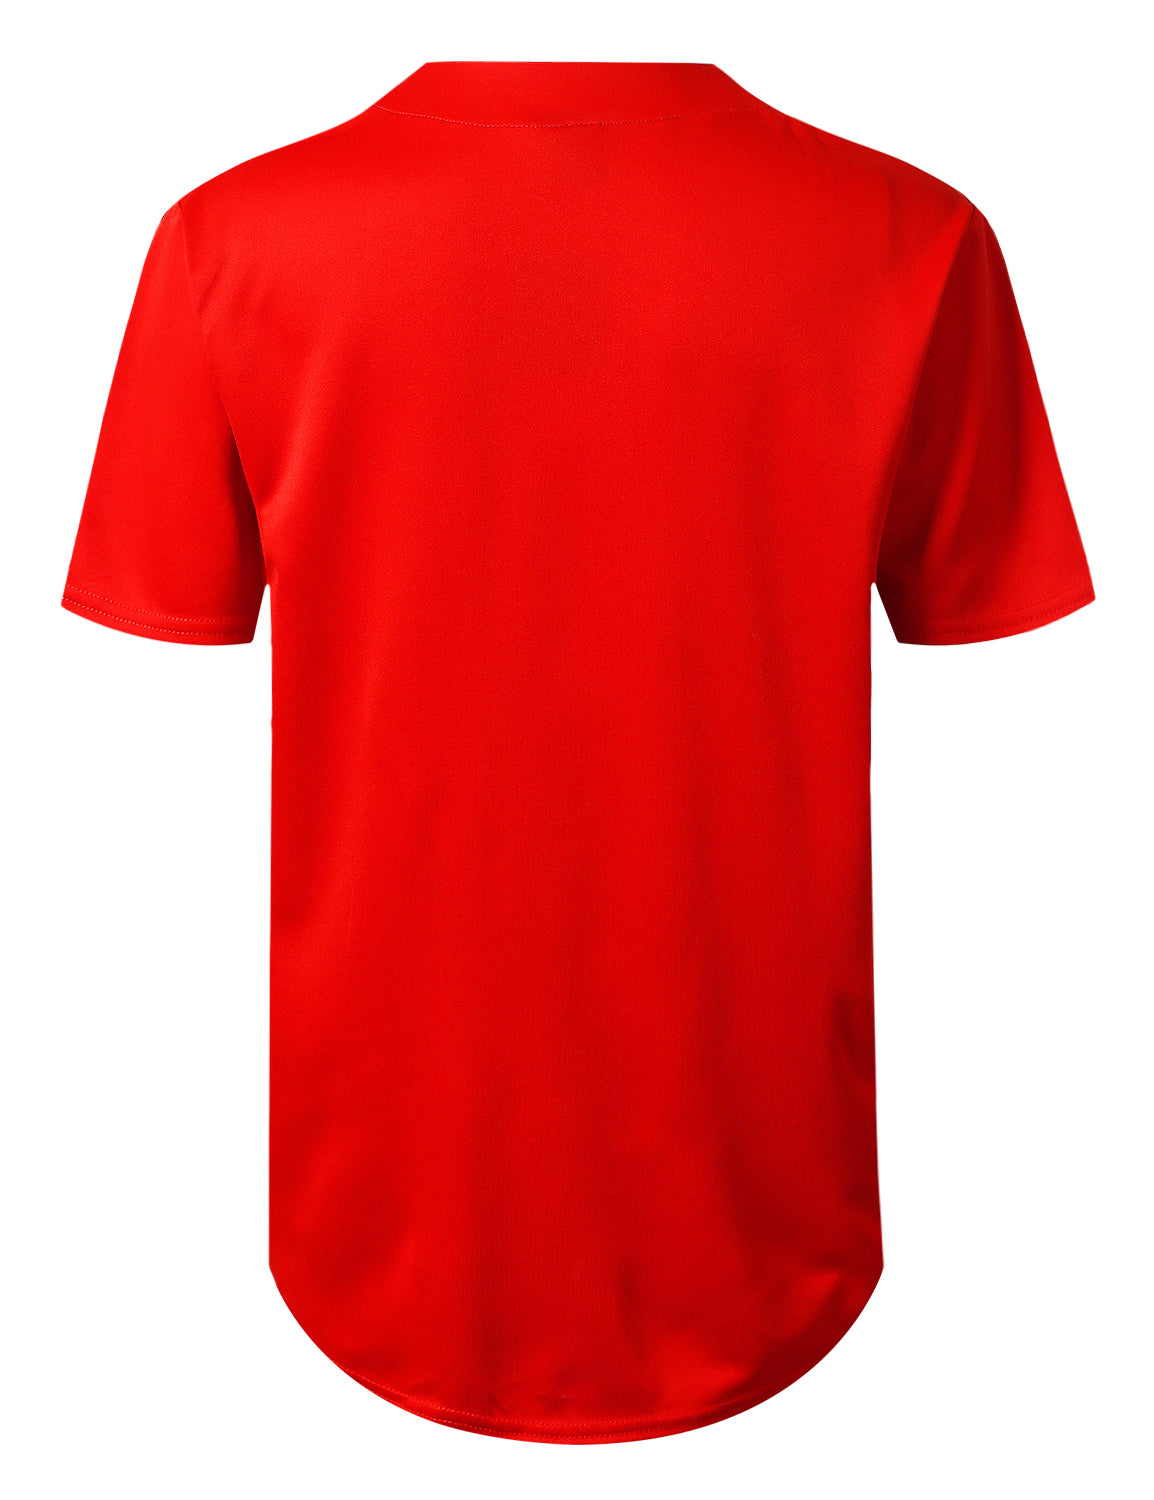 RED Basic Solid Baseball Jersey Shirt - URBANCREWS